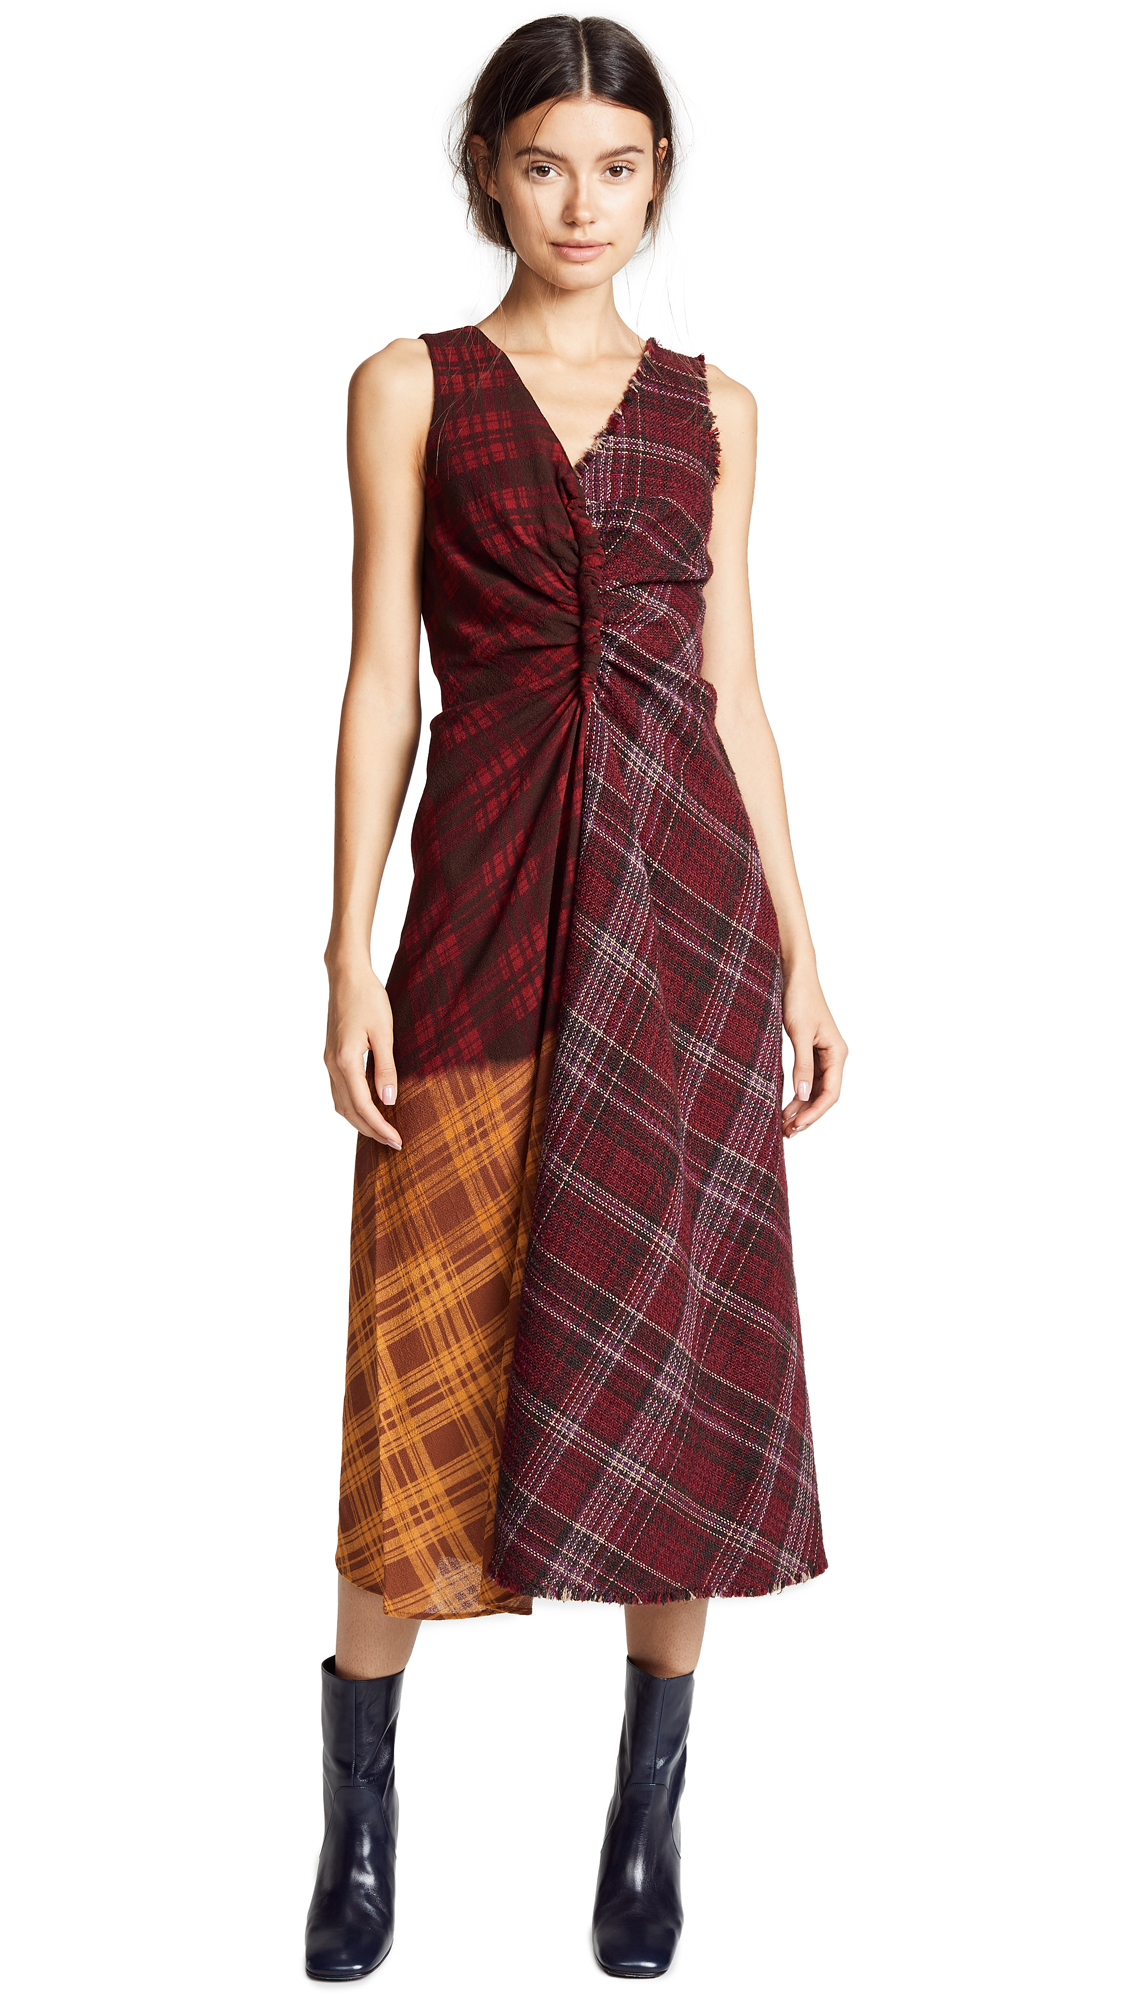 Acne Studios Mixed Media Drape Dress In Brown/Beige